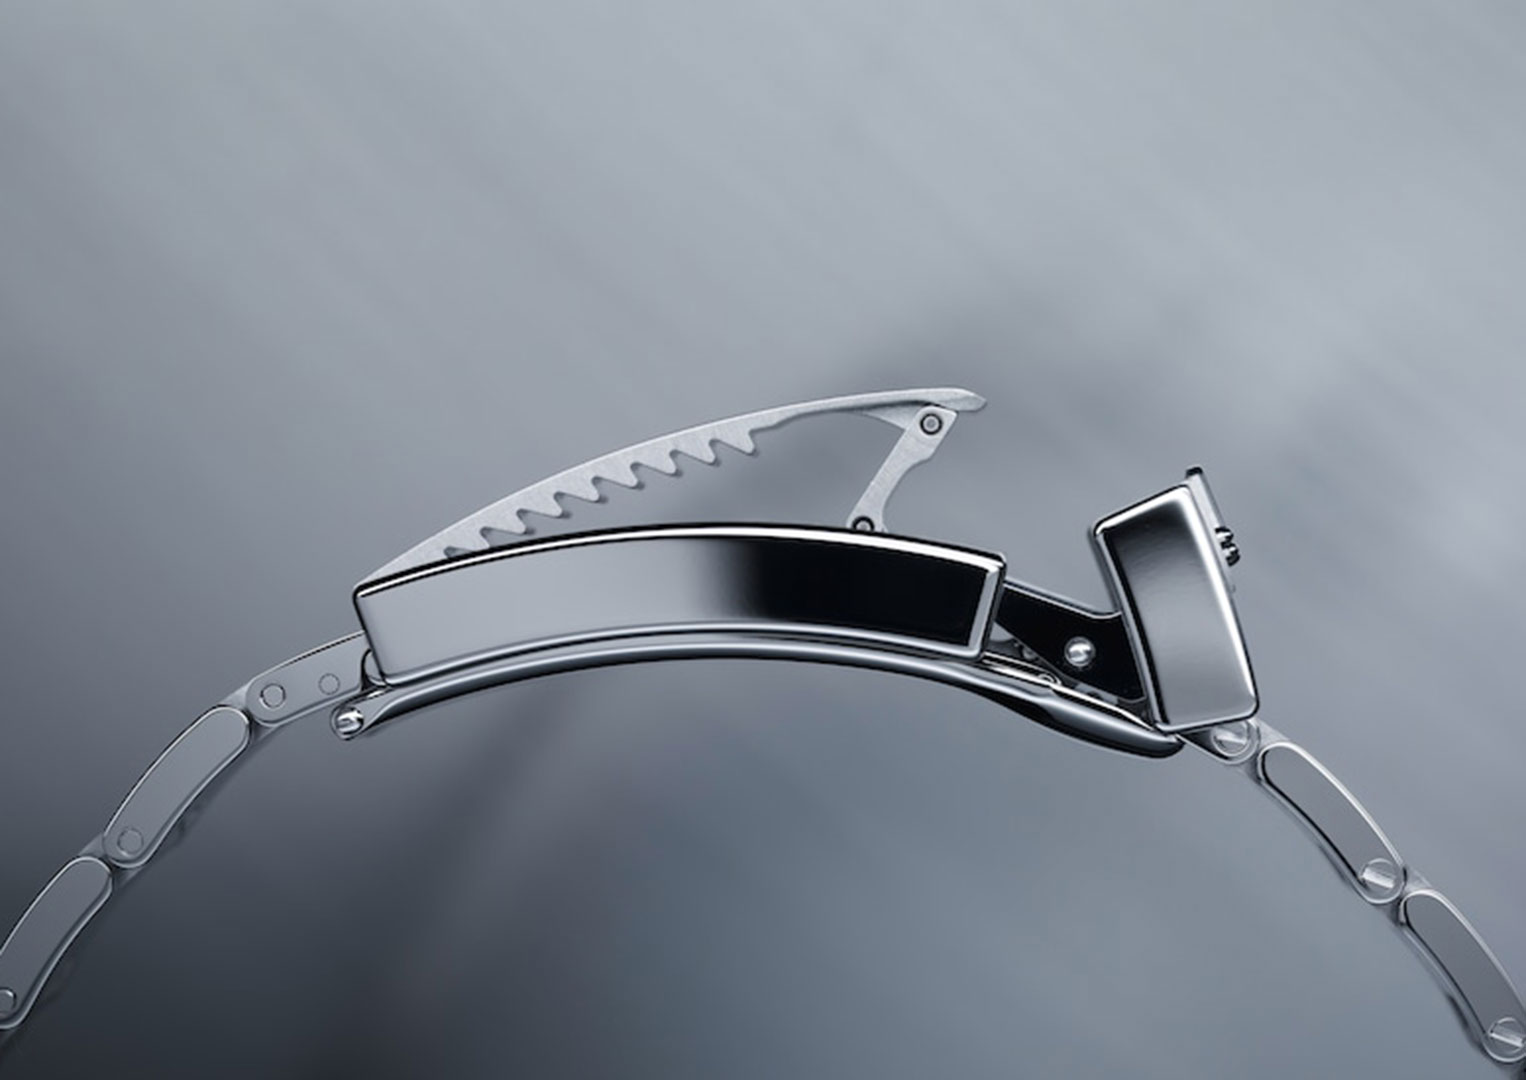 Rolex's Glidelock clasp is among its newest innovations